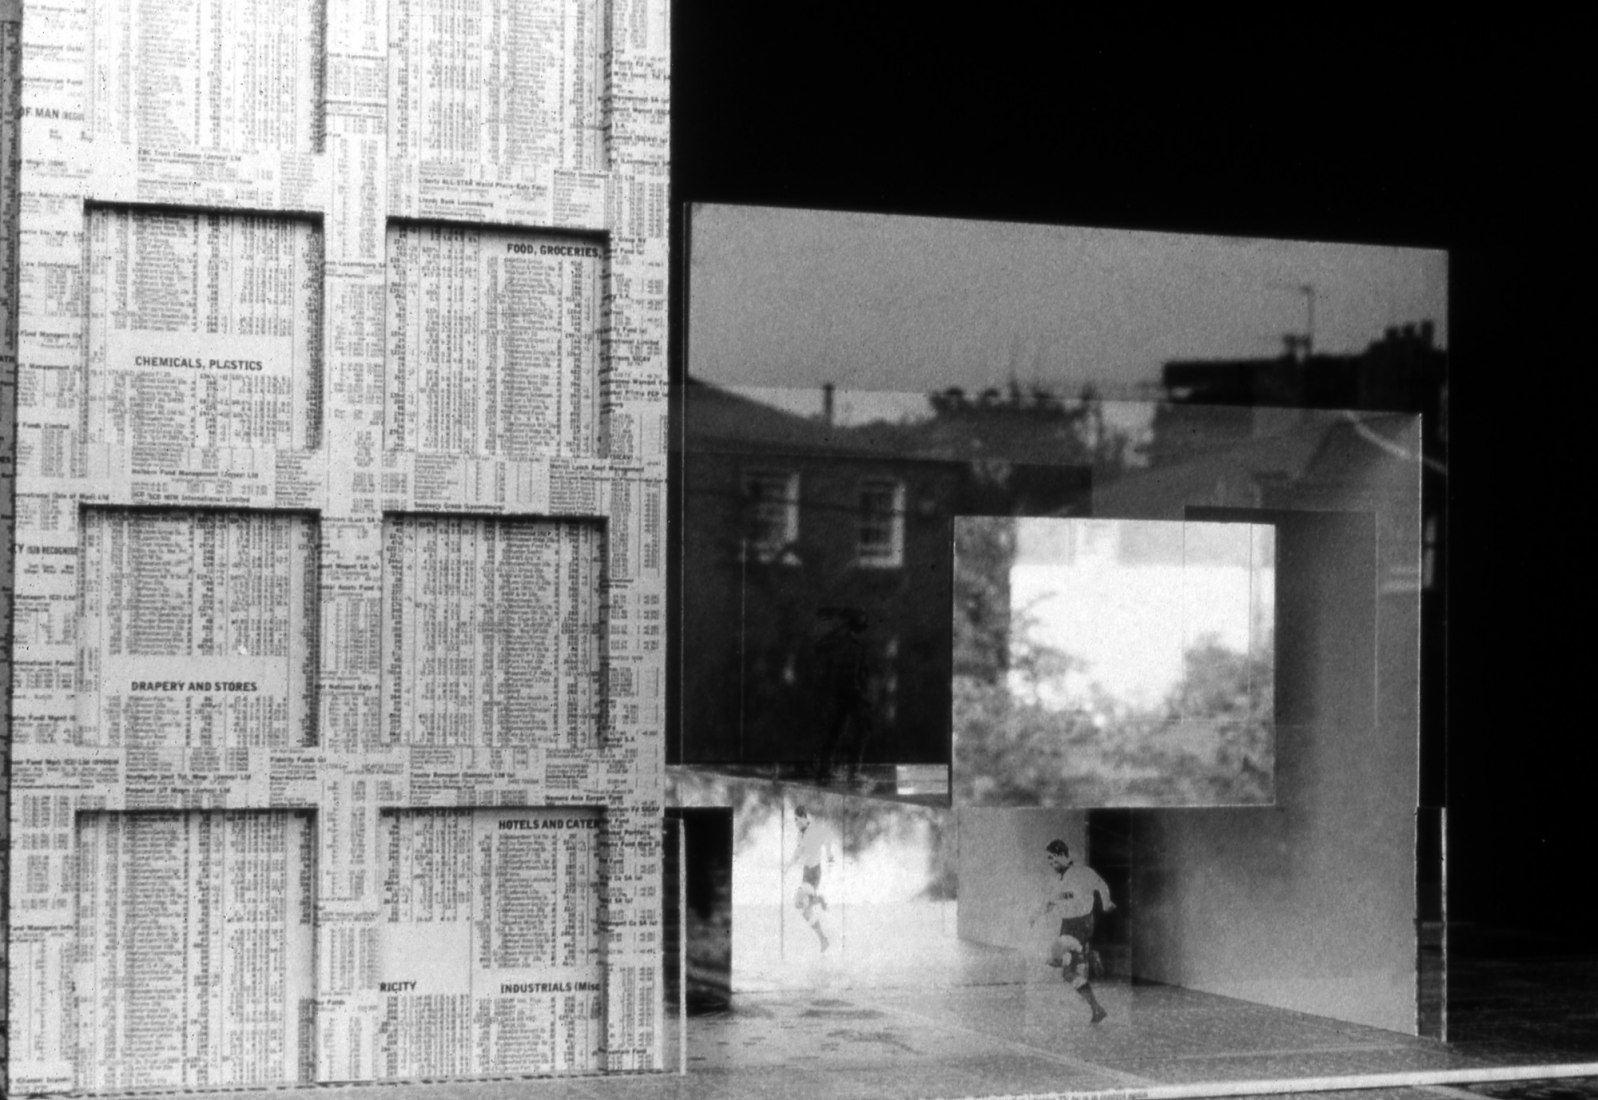 Another Glass House by Caruso St John (1991). Photography, 16.8 x 21 cm, edition of 7 numbers. Image courtesy of the Betts Project Gallery.